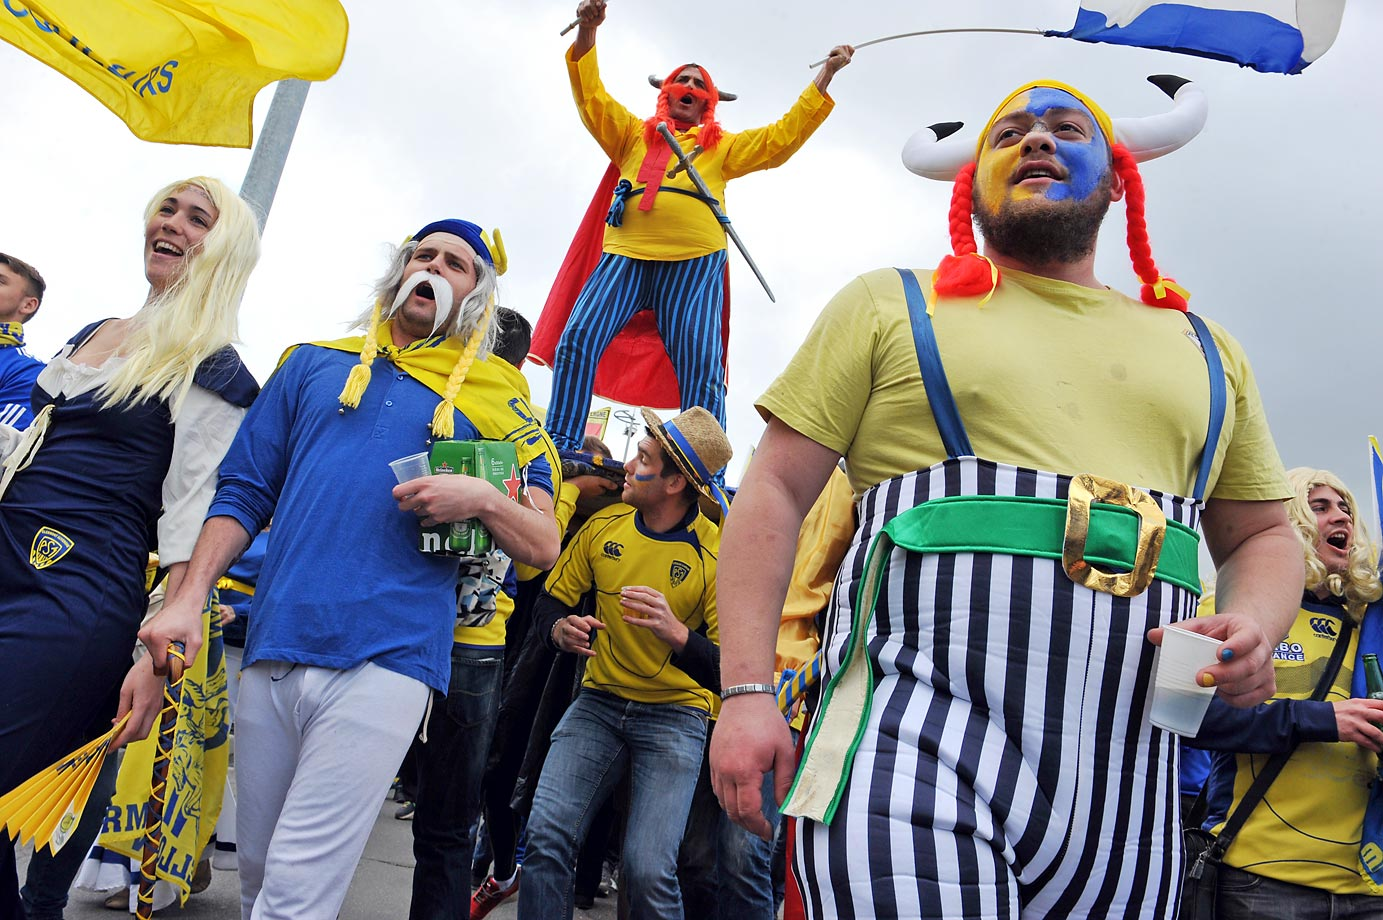 Clermont fans arrive to the stadium for the European Rugby Champions Cup semifinal match against the Saracens.